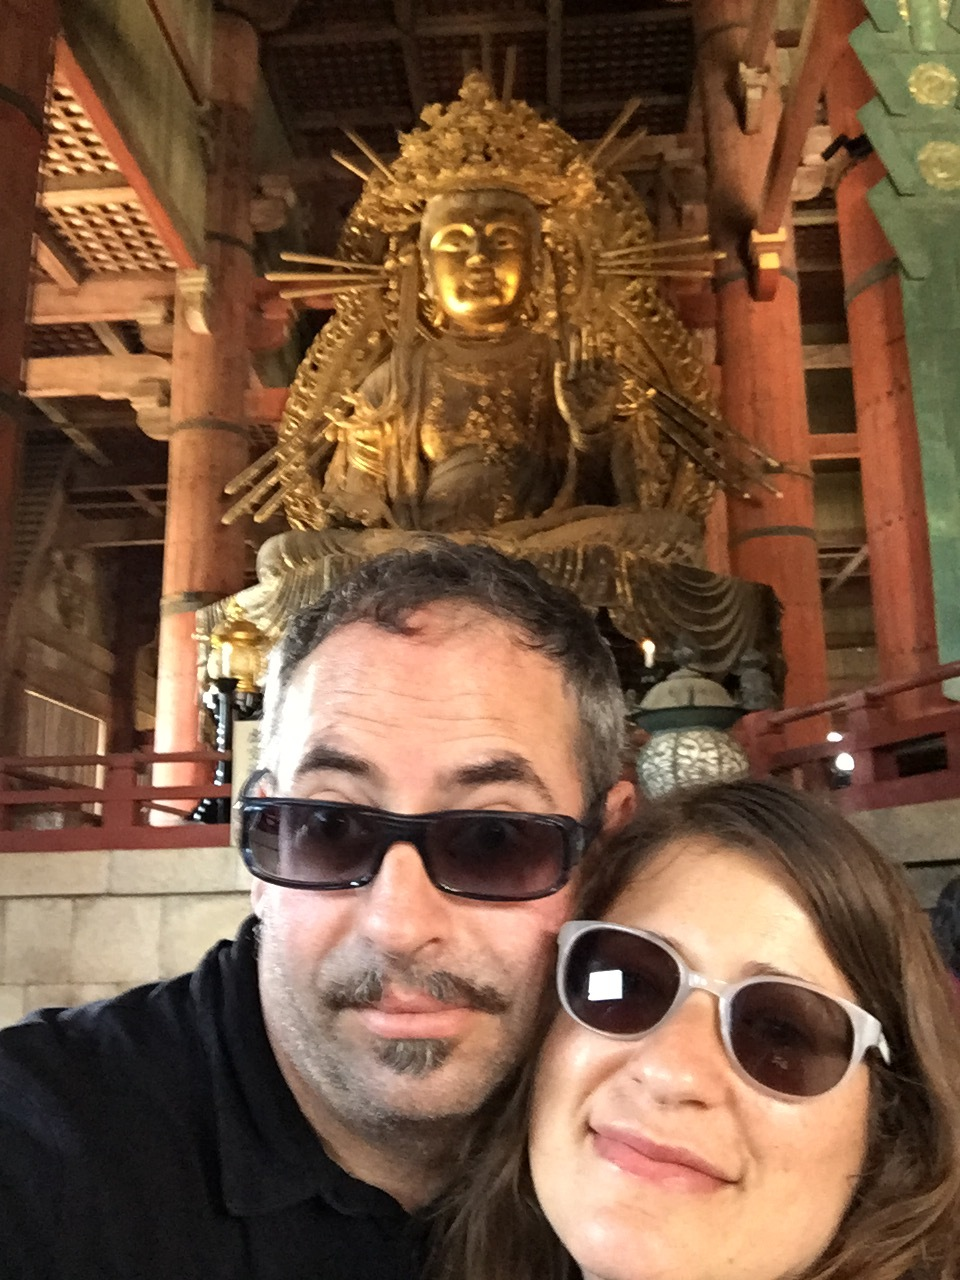 hey, there's a buddha on your head